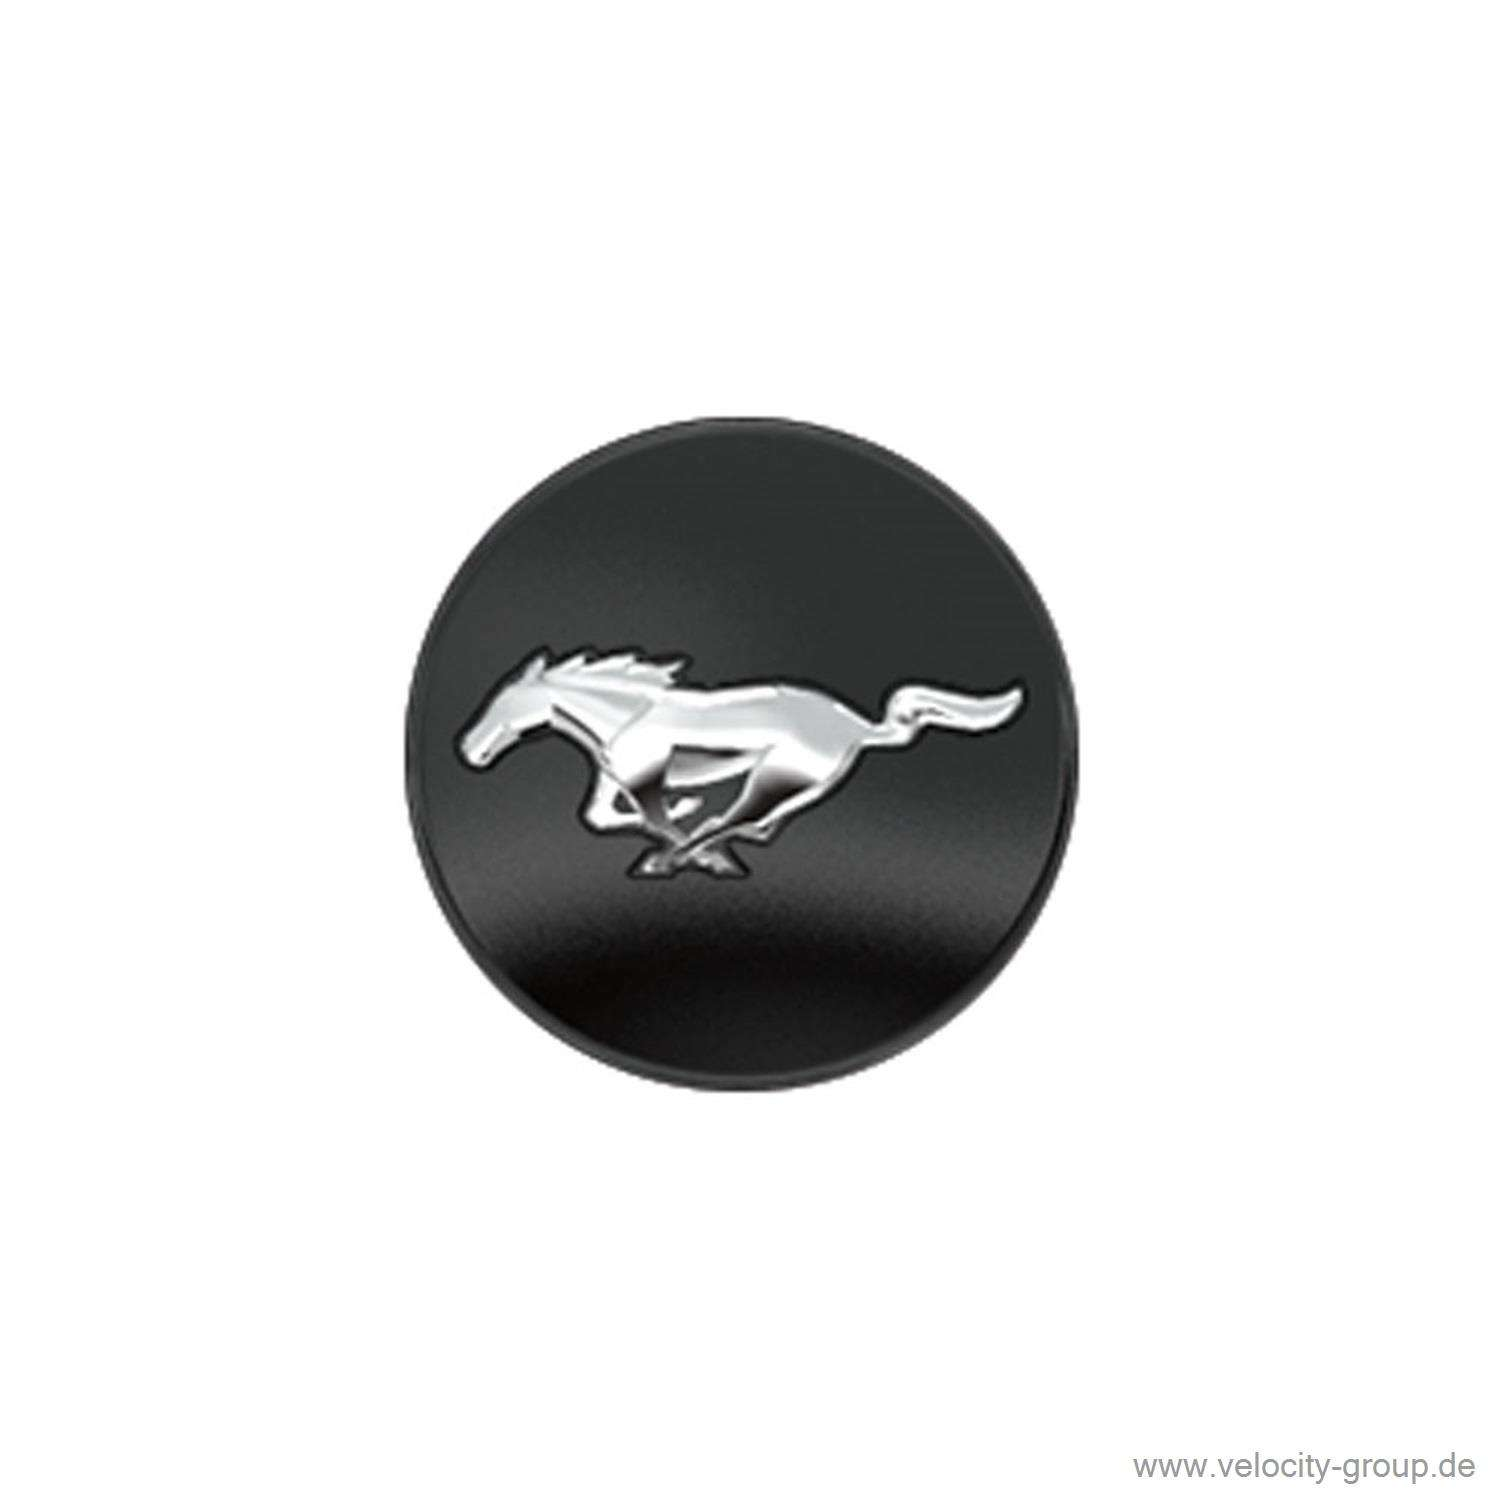 15 17 ford mustang wheel cap black running pony logo m 1096 o